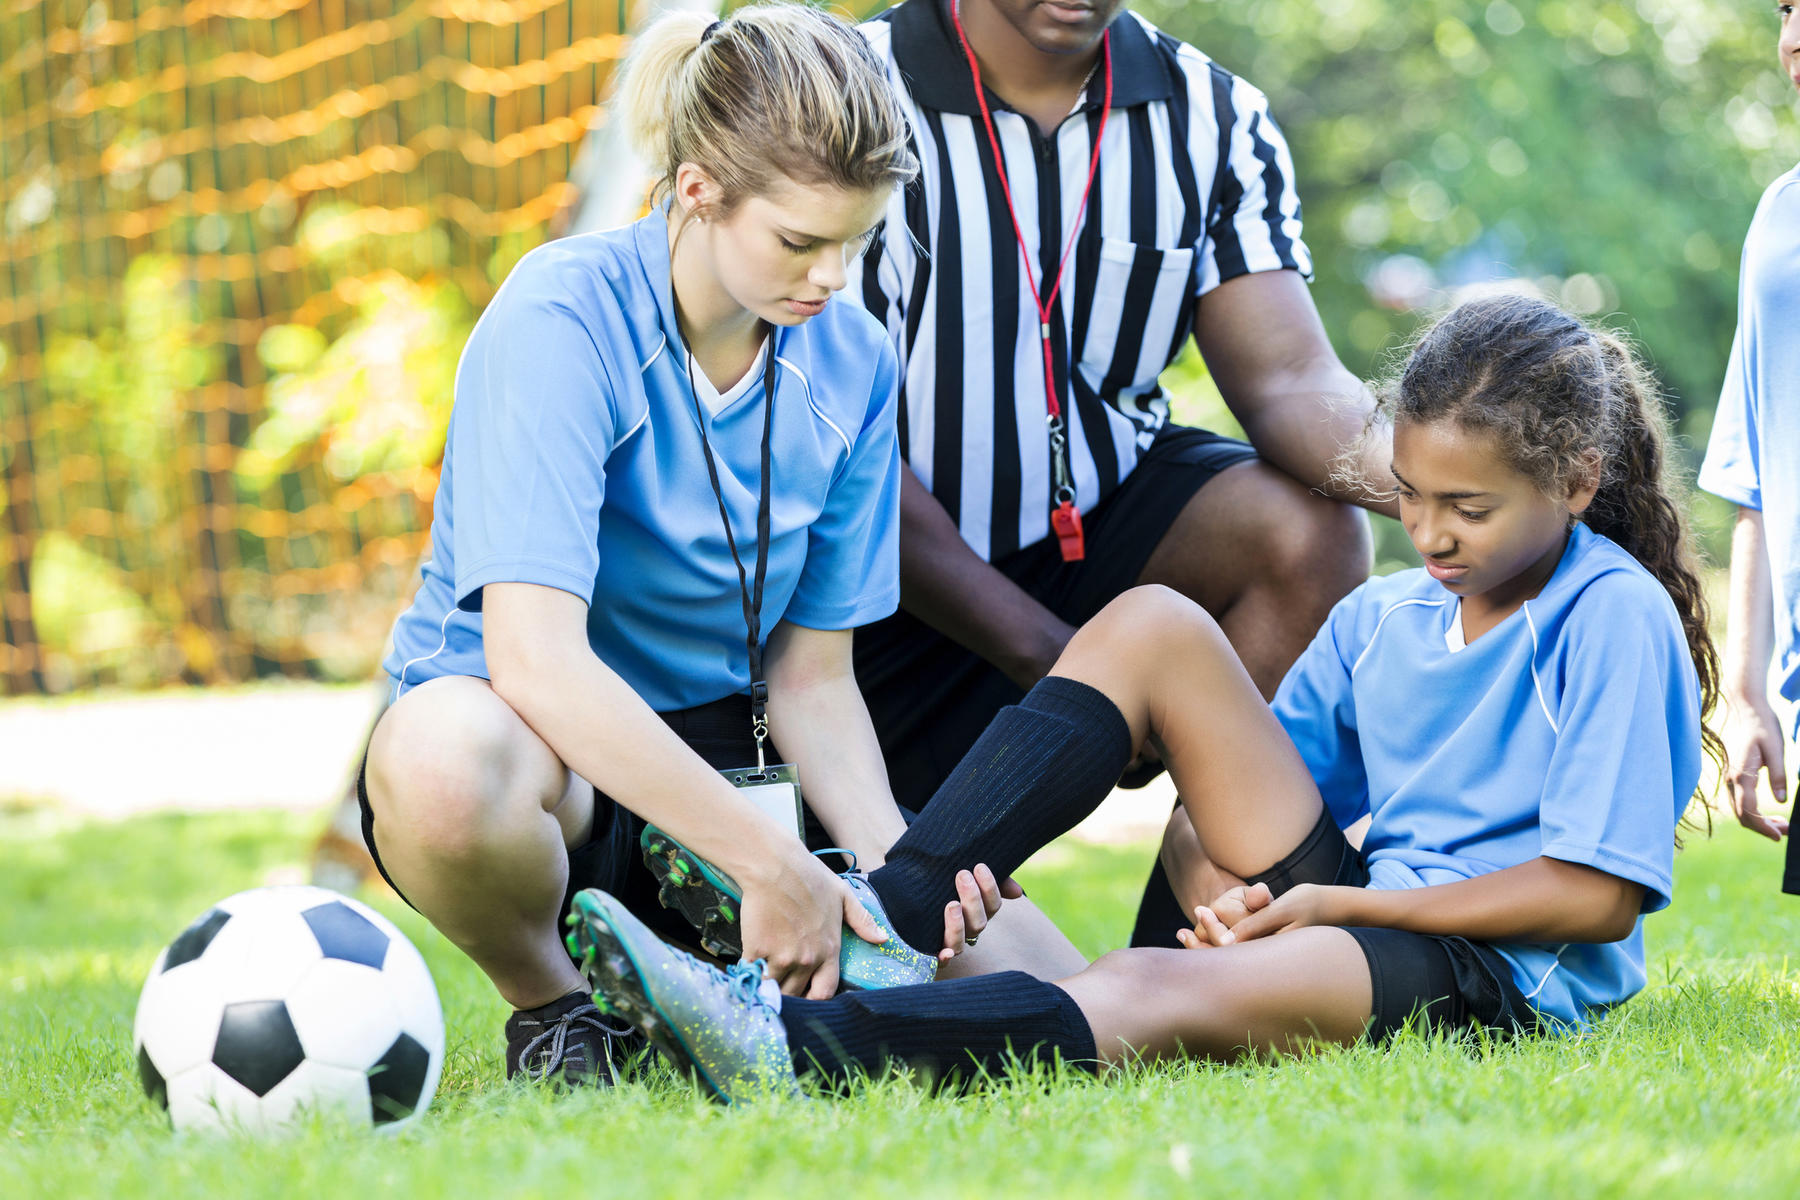 Child with sports injury